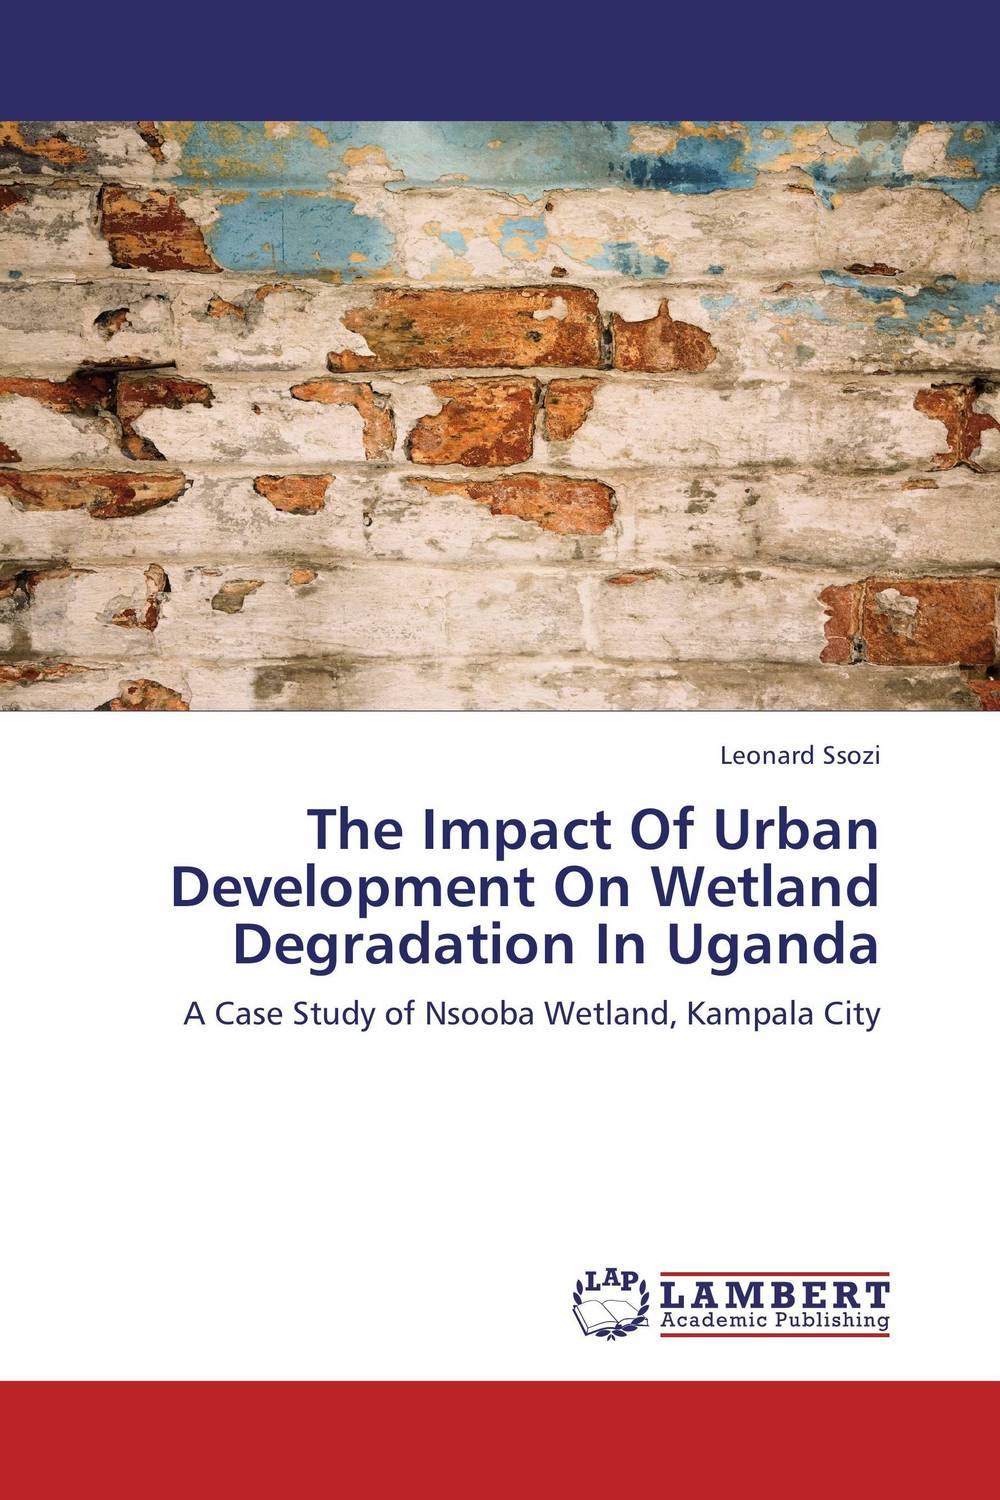 The Impact Of Urban Development On Wetland Degradation In Uganda emerging issues on sustainable urban development